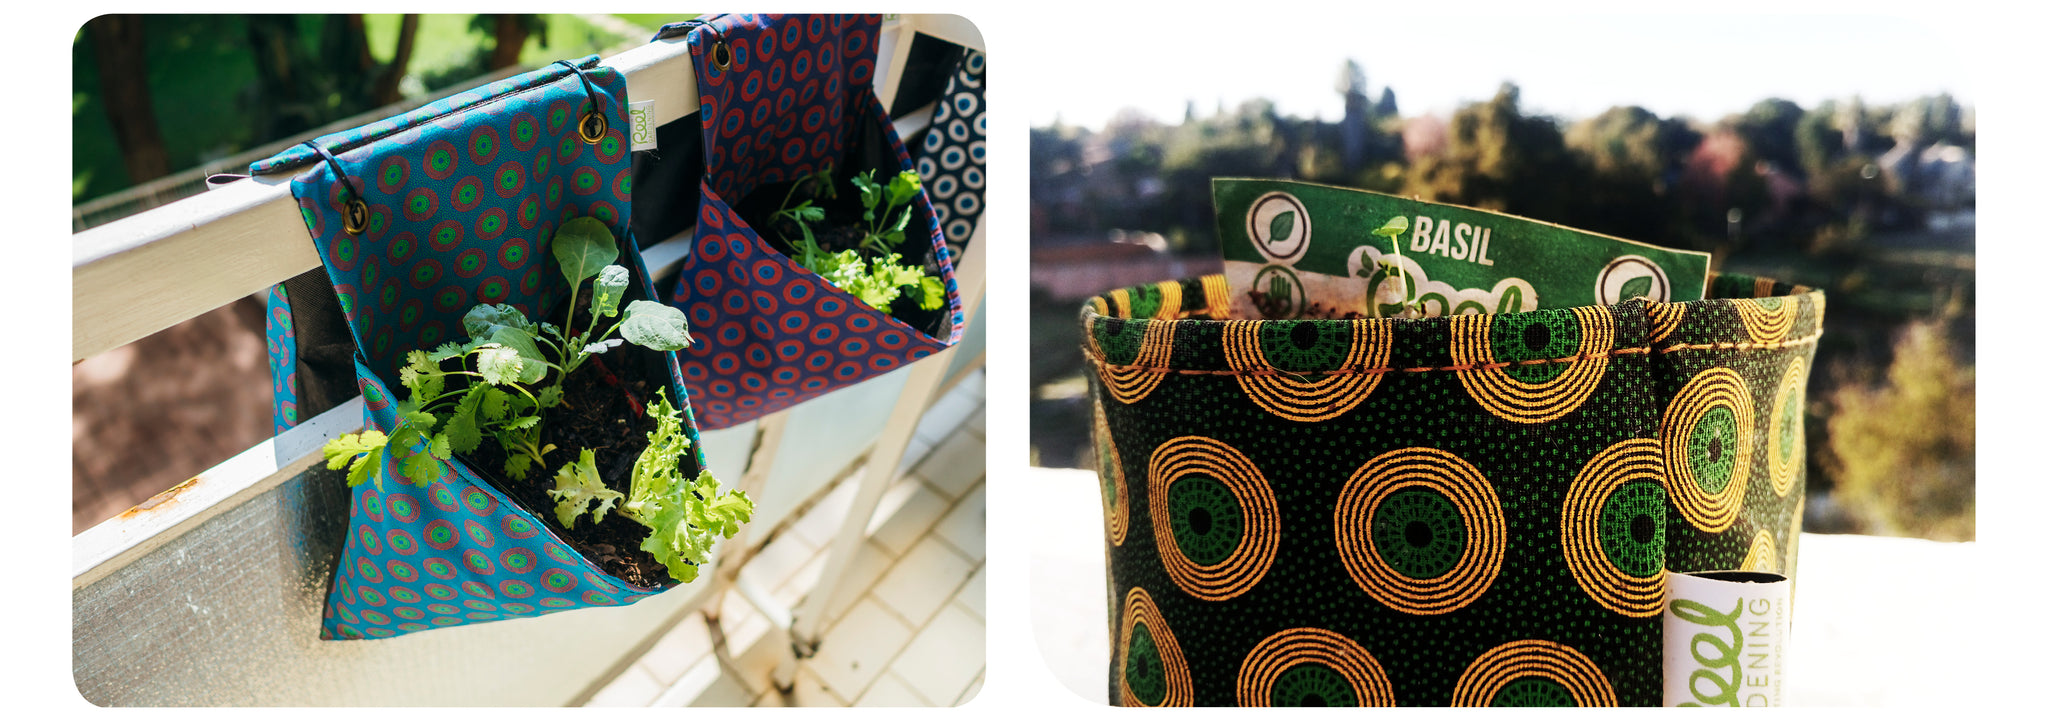 Reel Gardening Bag and Pot